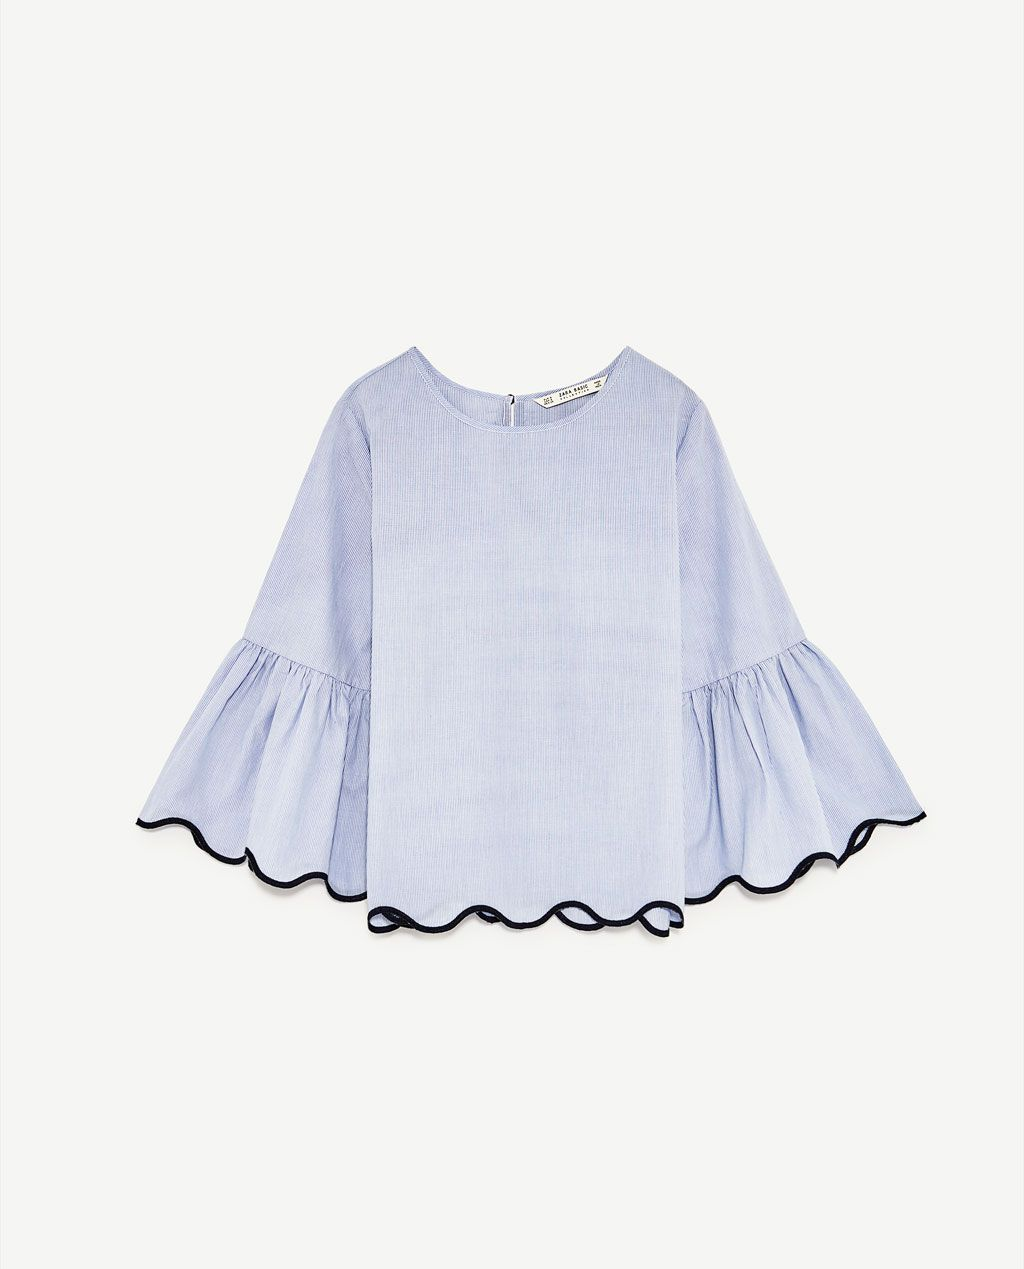 07a9fdad221c Image 8 of STRIPED TOP WITH SCALLOPED HEM from Zara